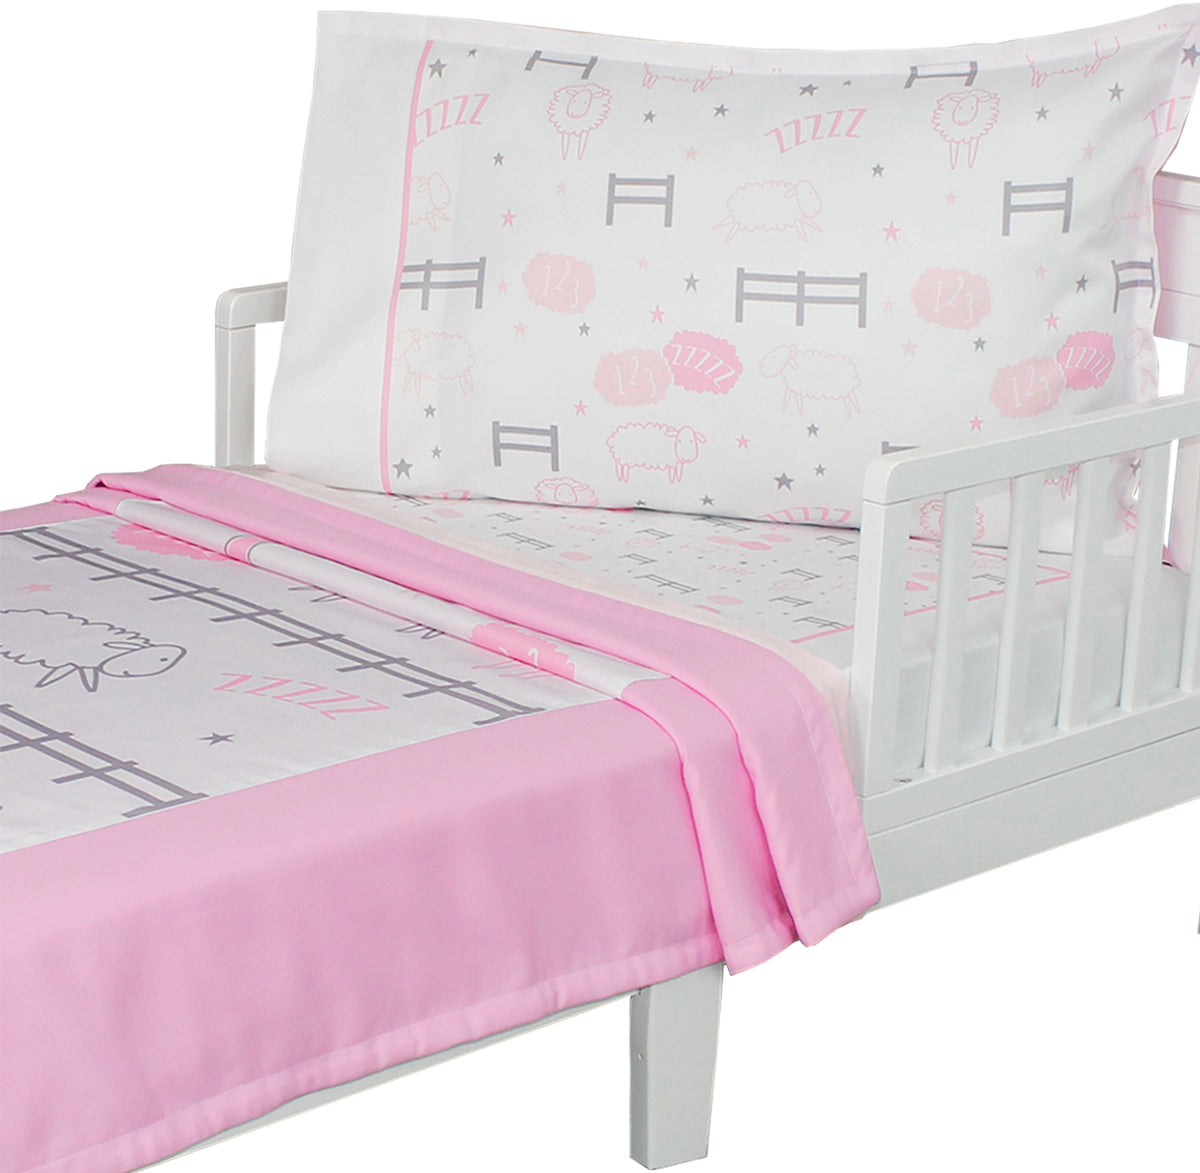 Sheep Kids Bedding Sweet Dreams Farm Animal Toddler Bed